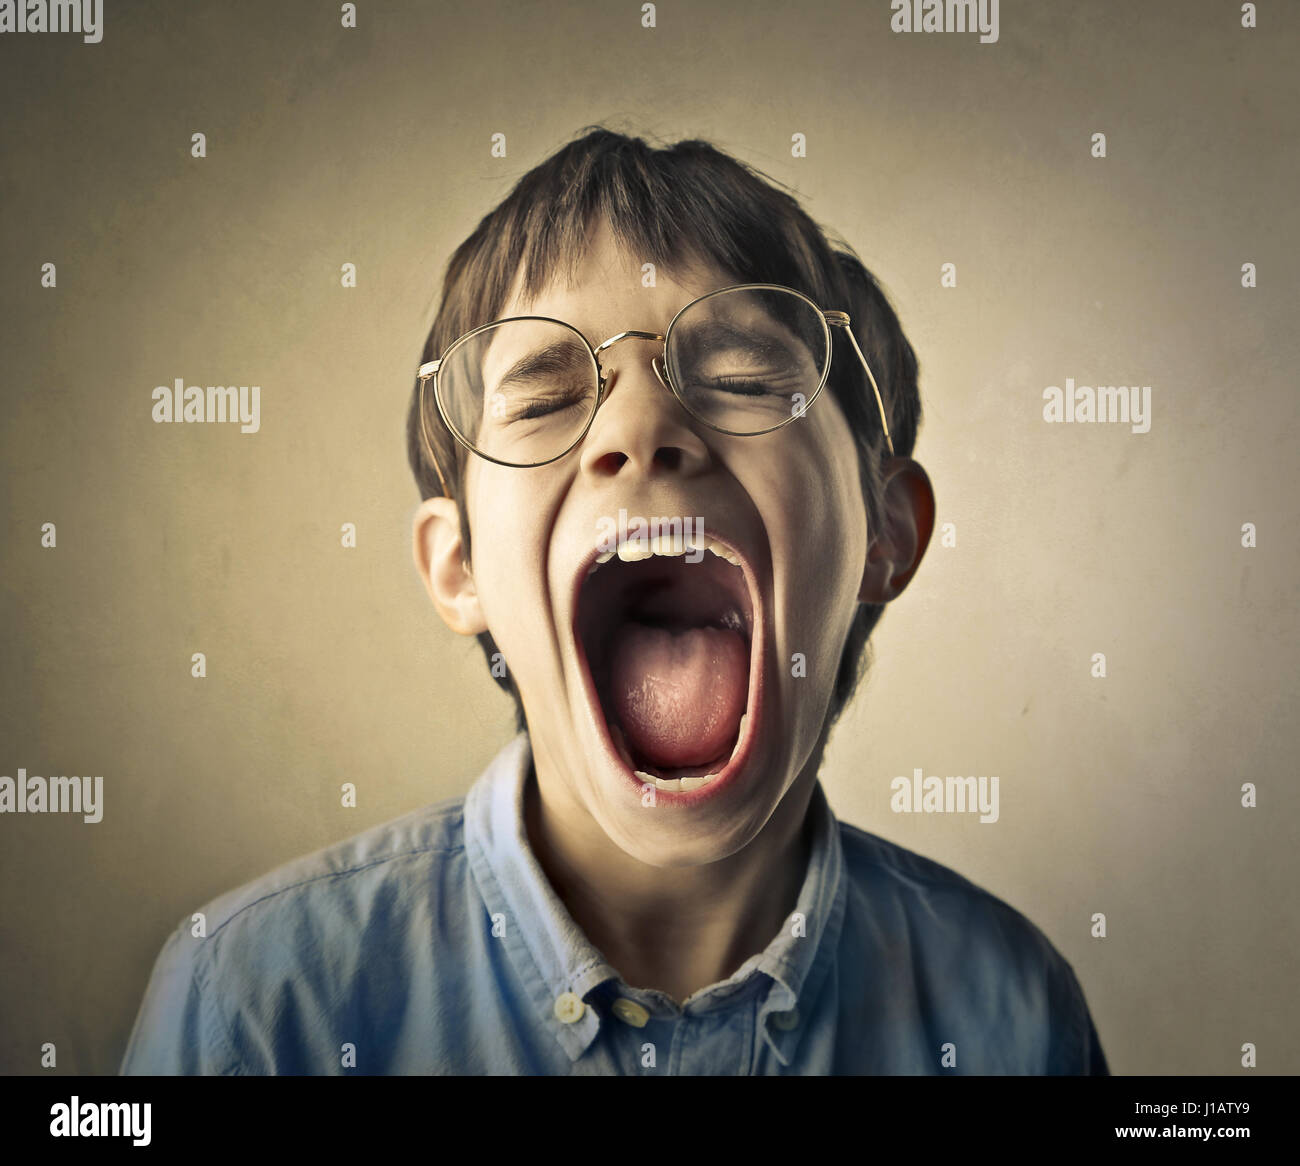 young boy screaming stock photo 138536701 alamy